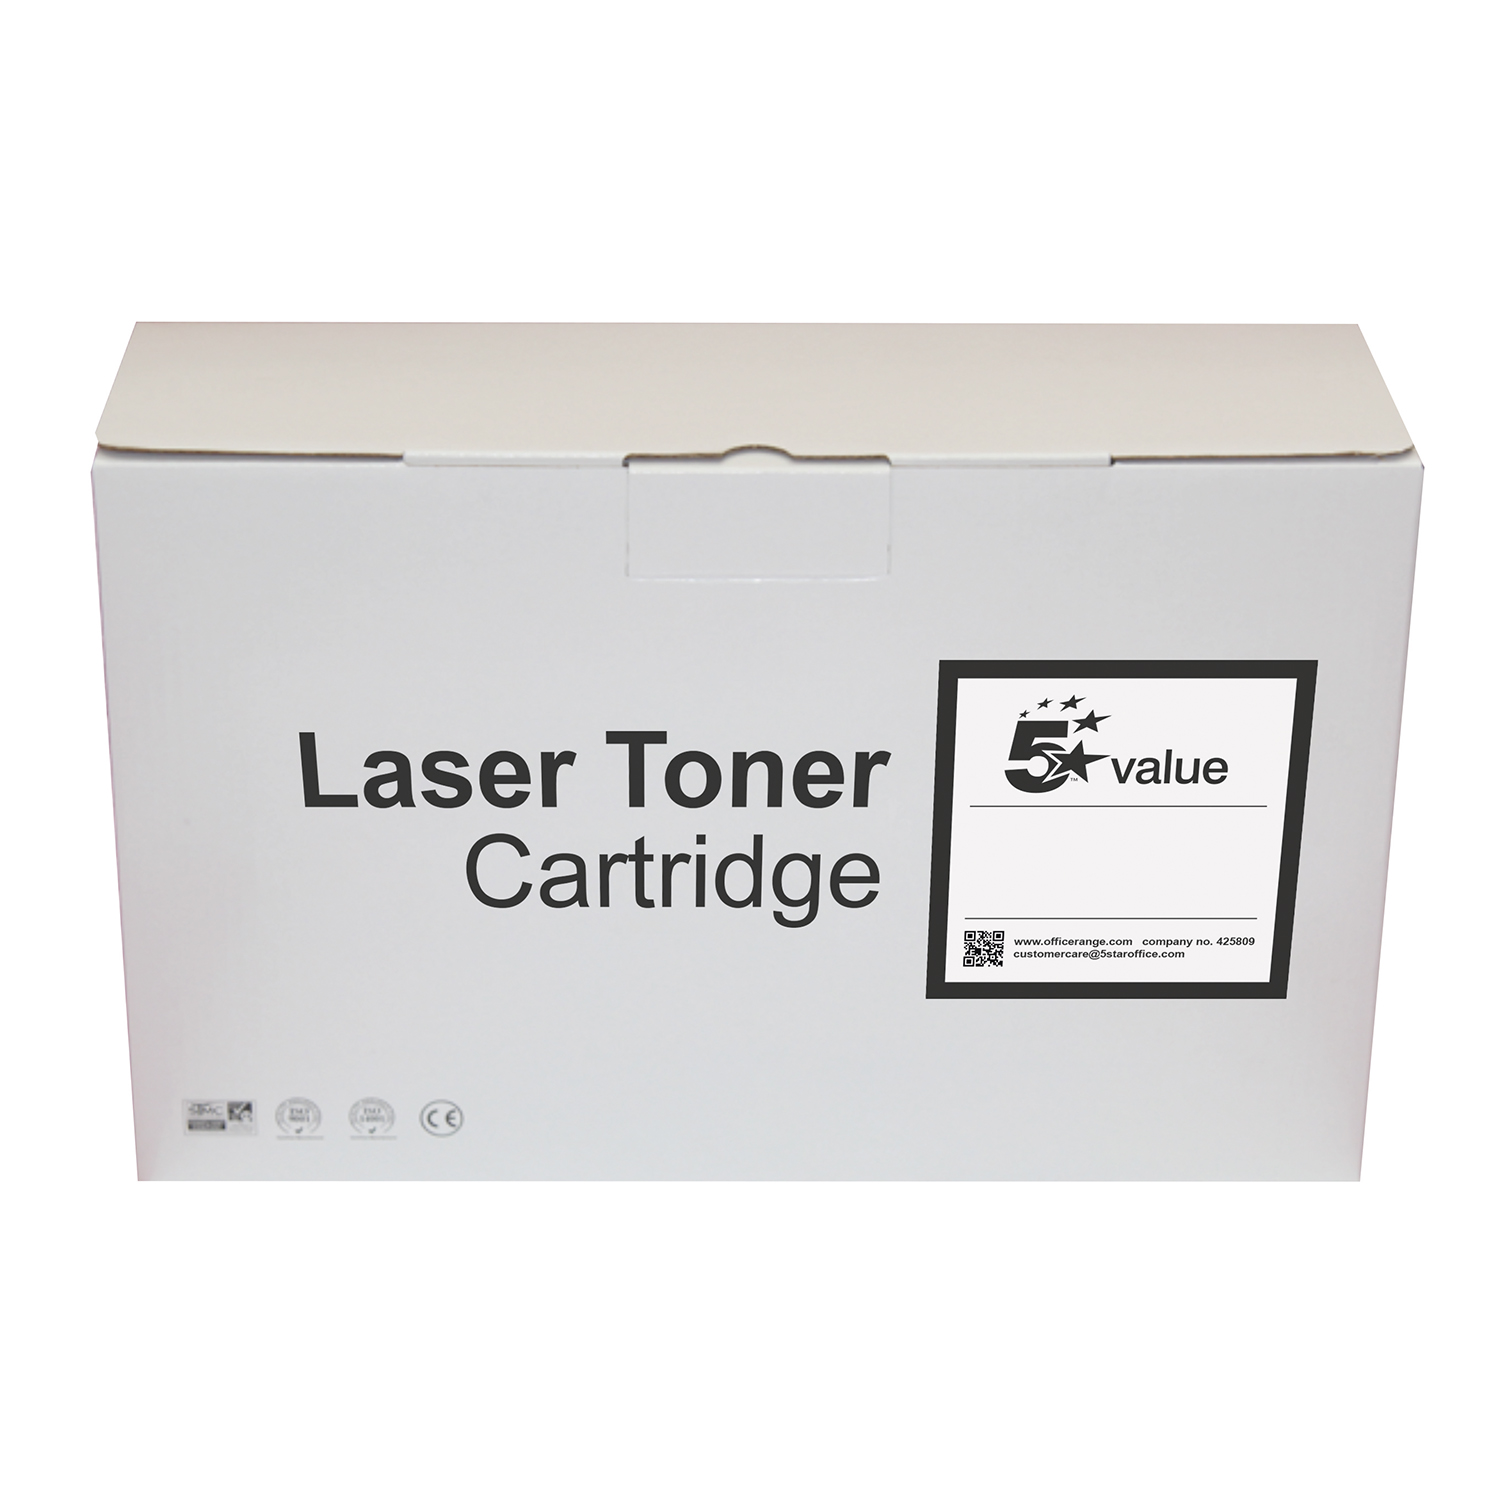 Maintenance Kits 5 Star Value Reman Laser Toner Cartridge Page Life 4000pp Black Canon FX10 0263B002 Alternative